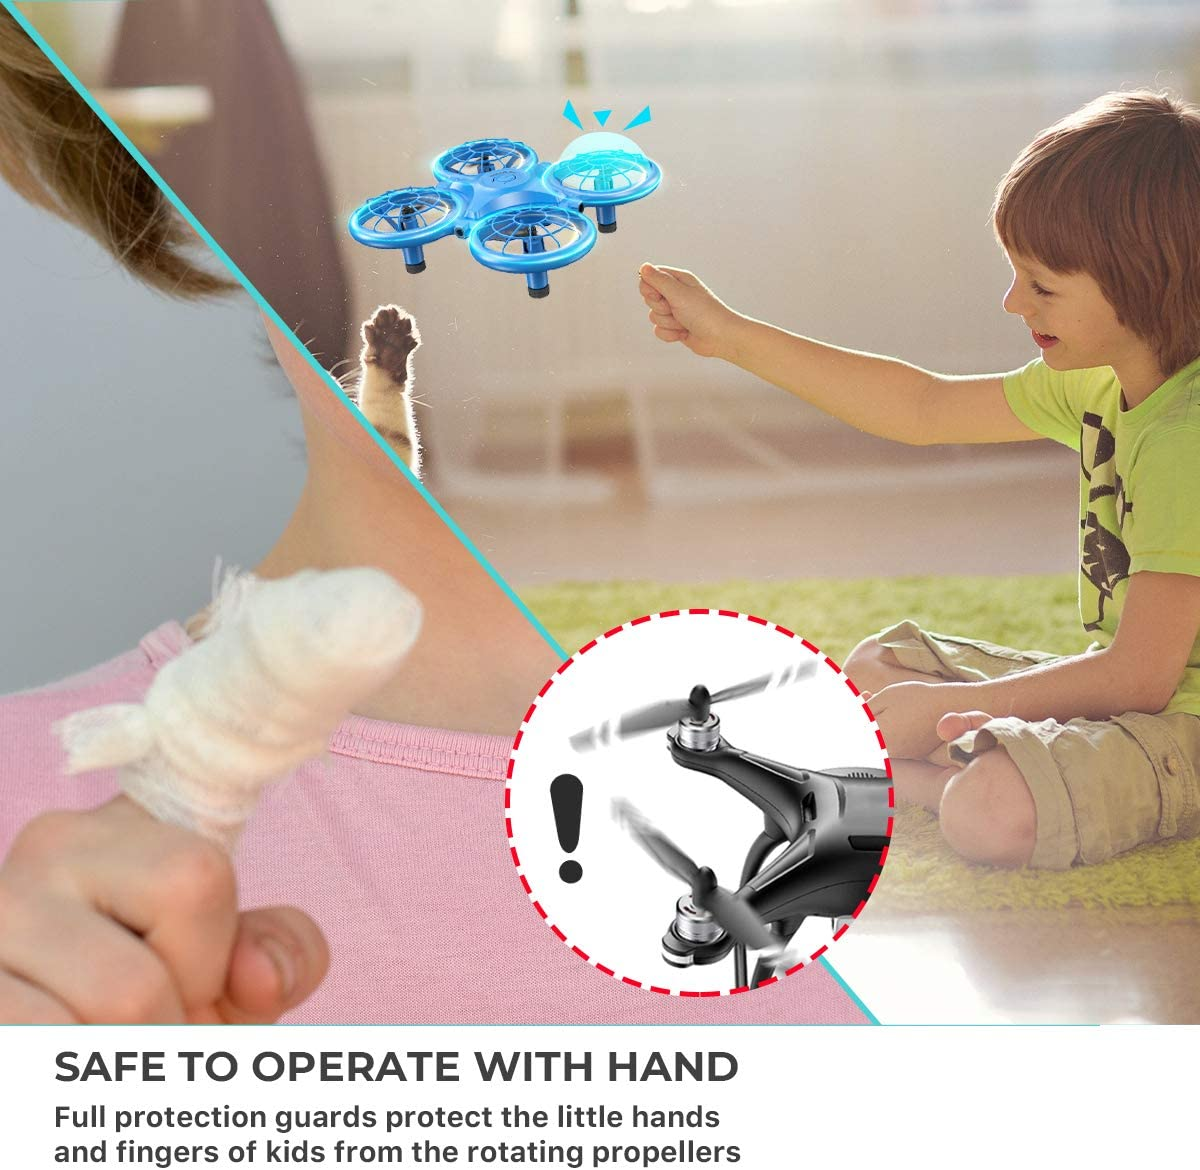 Gift for Boys Girls-DK01 Dragon Touch Mini Drone for Kids One Key Return/&Speed Adjustment Altitude Hold Headless Mode 3D Flips G-Sensor Mode RC Helicopter with 2 Batteries